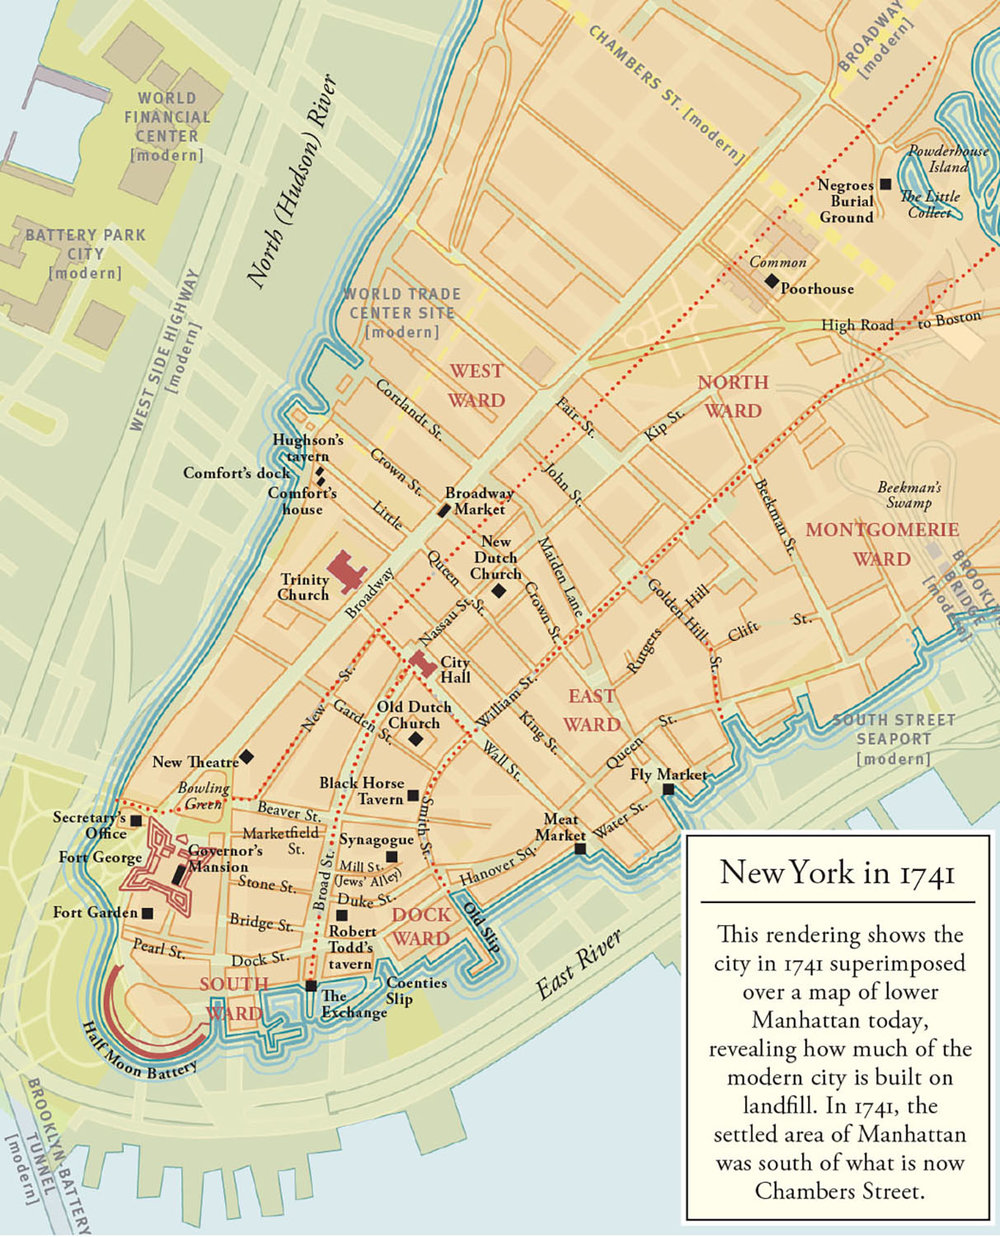 1741 New York Conspiracy Overview